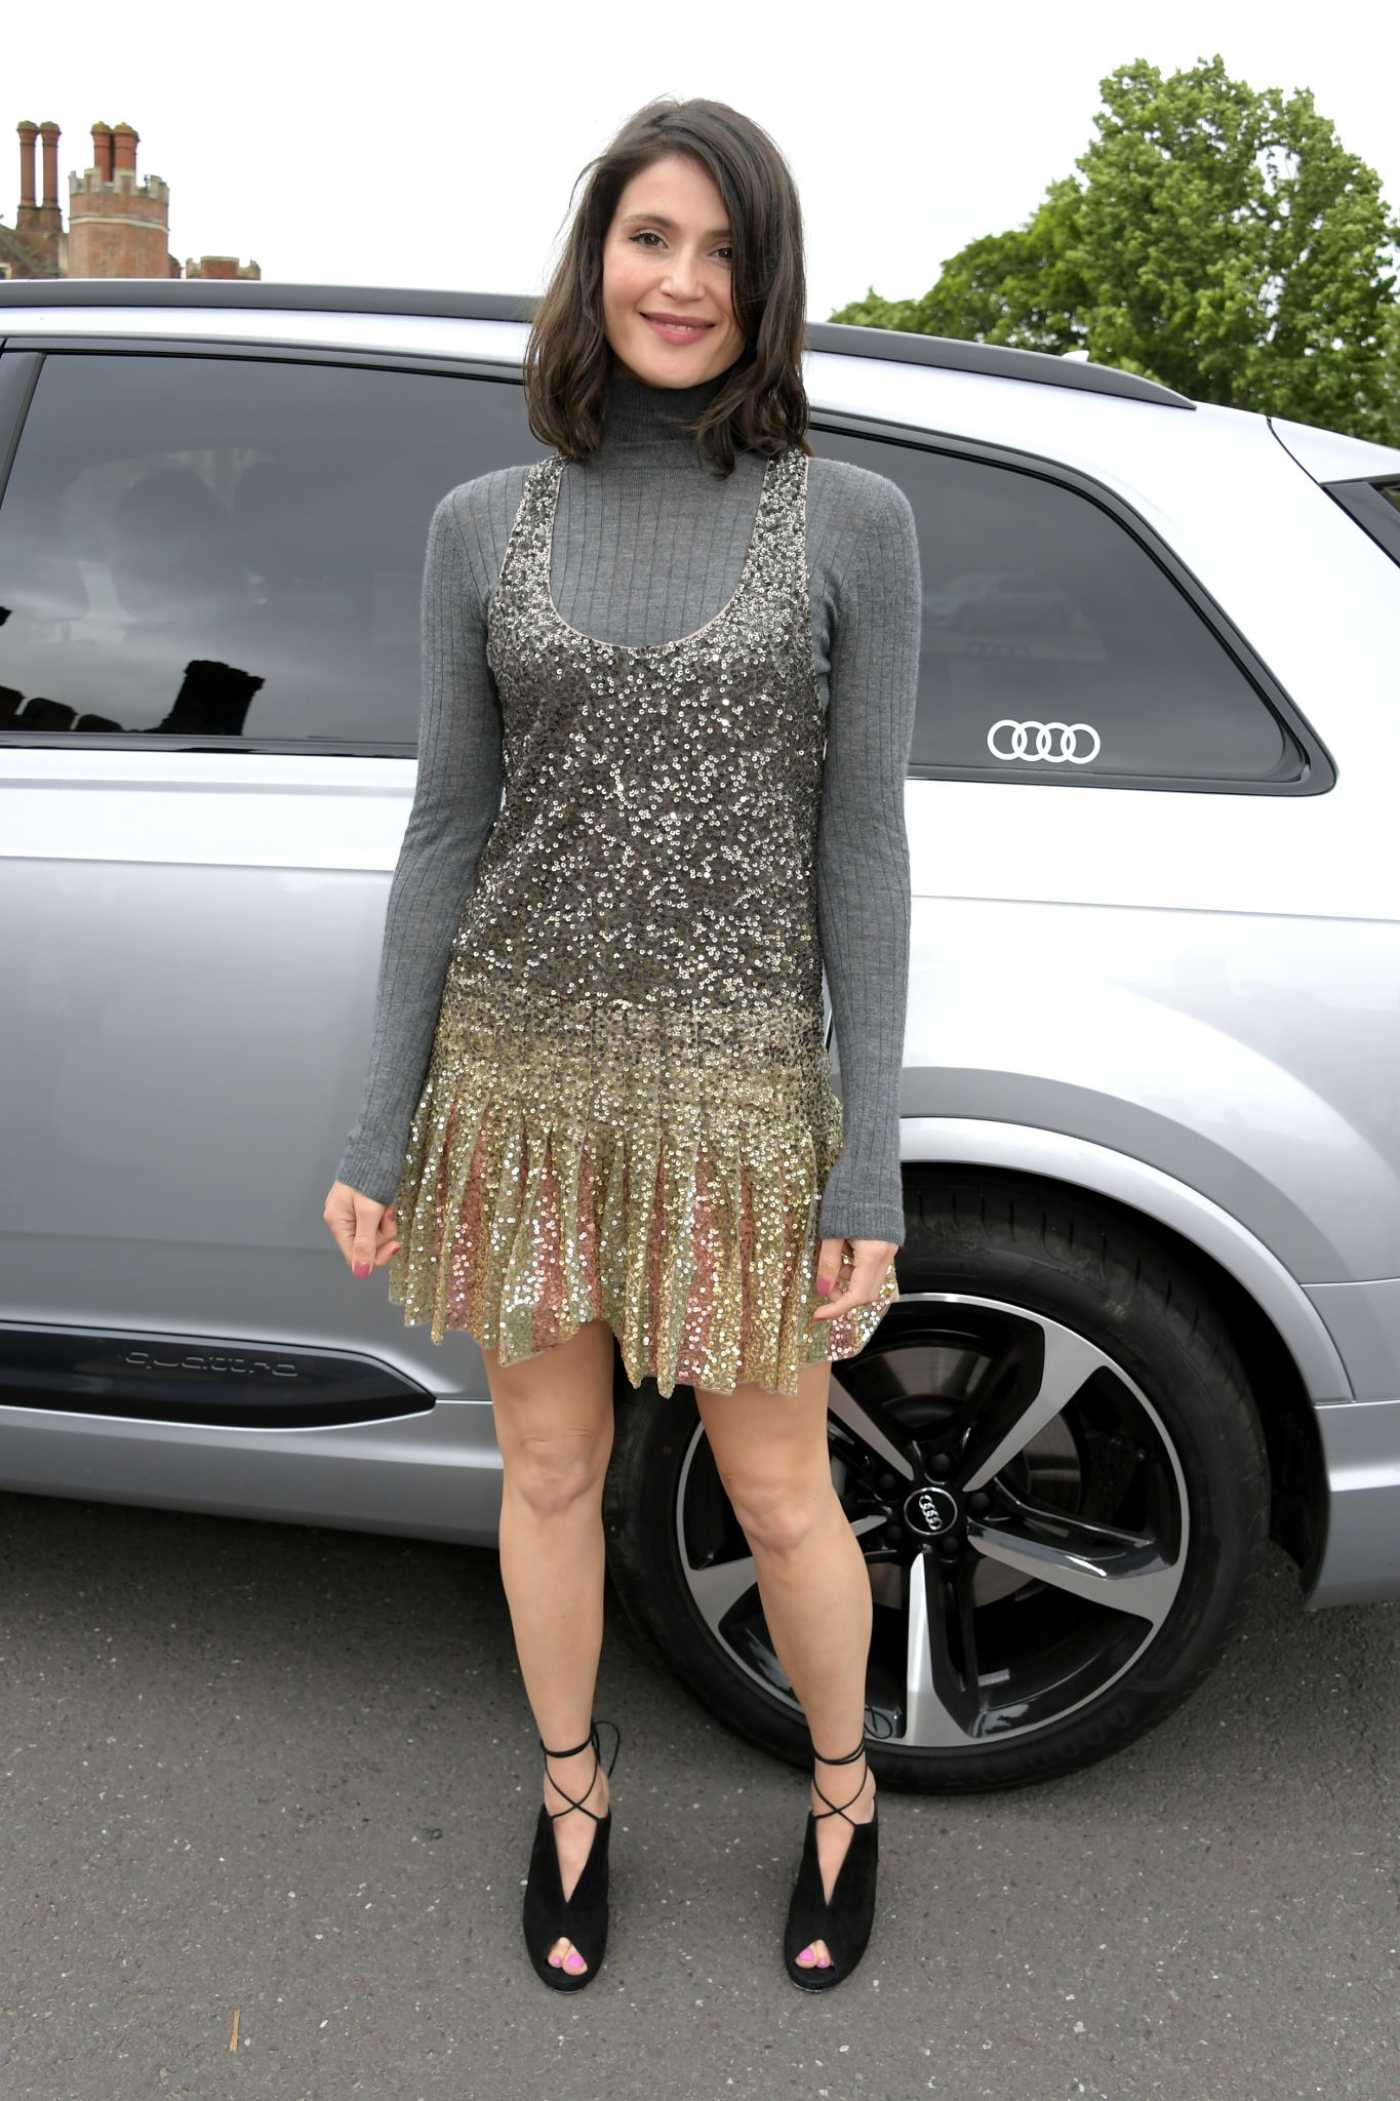 Gemma Arterton Attends the Audi Sentebale Concert at Hampton Court Palace in London 06/11/2019